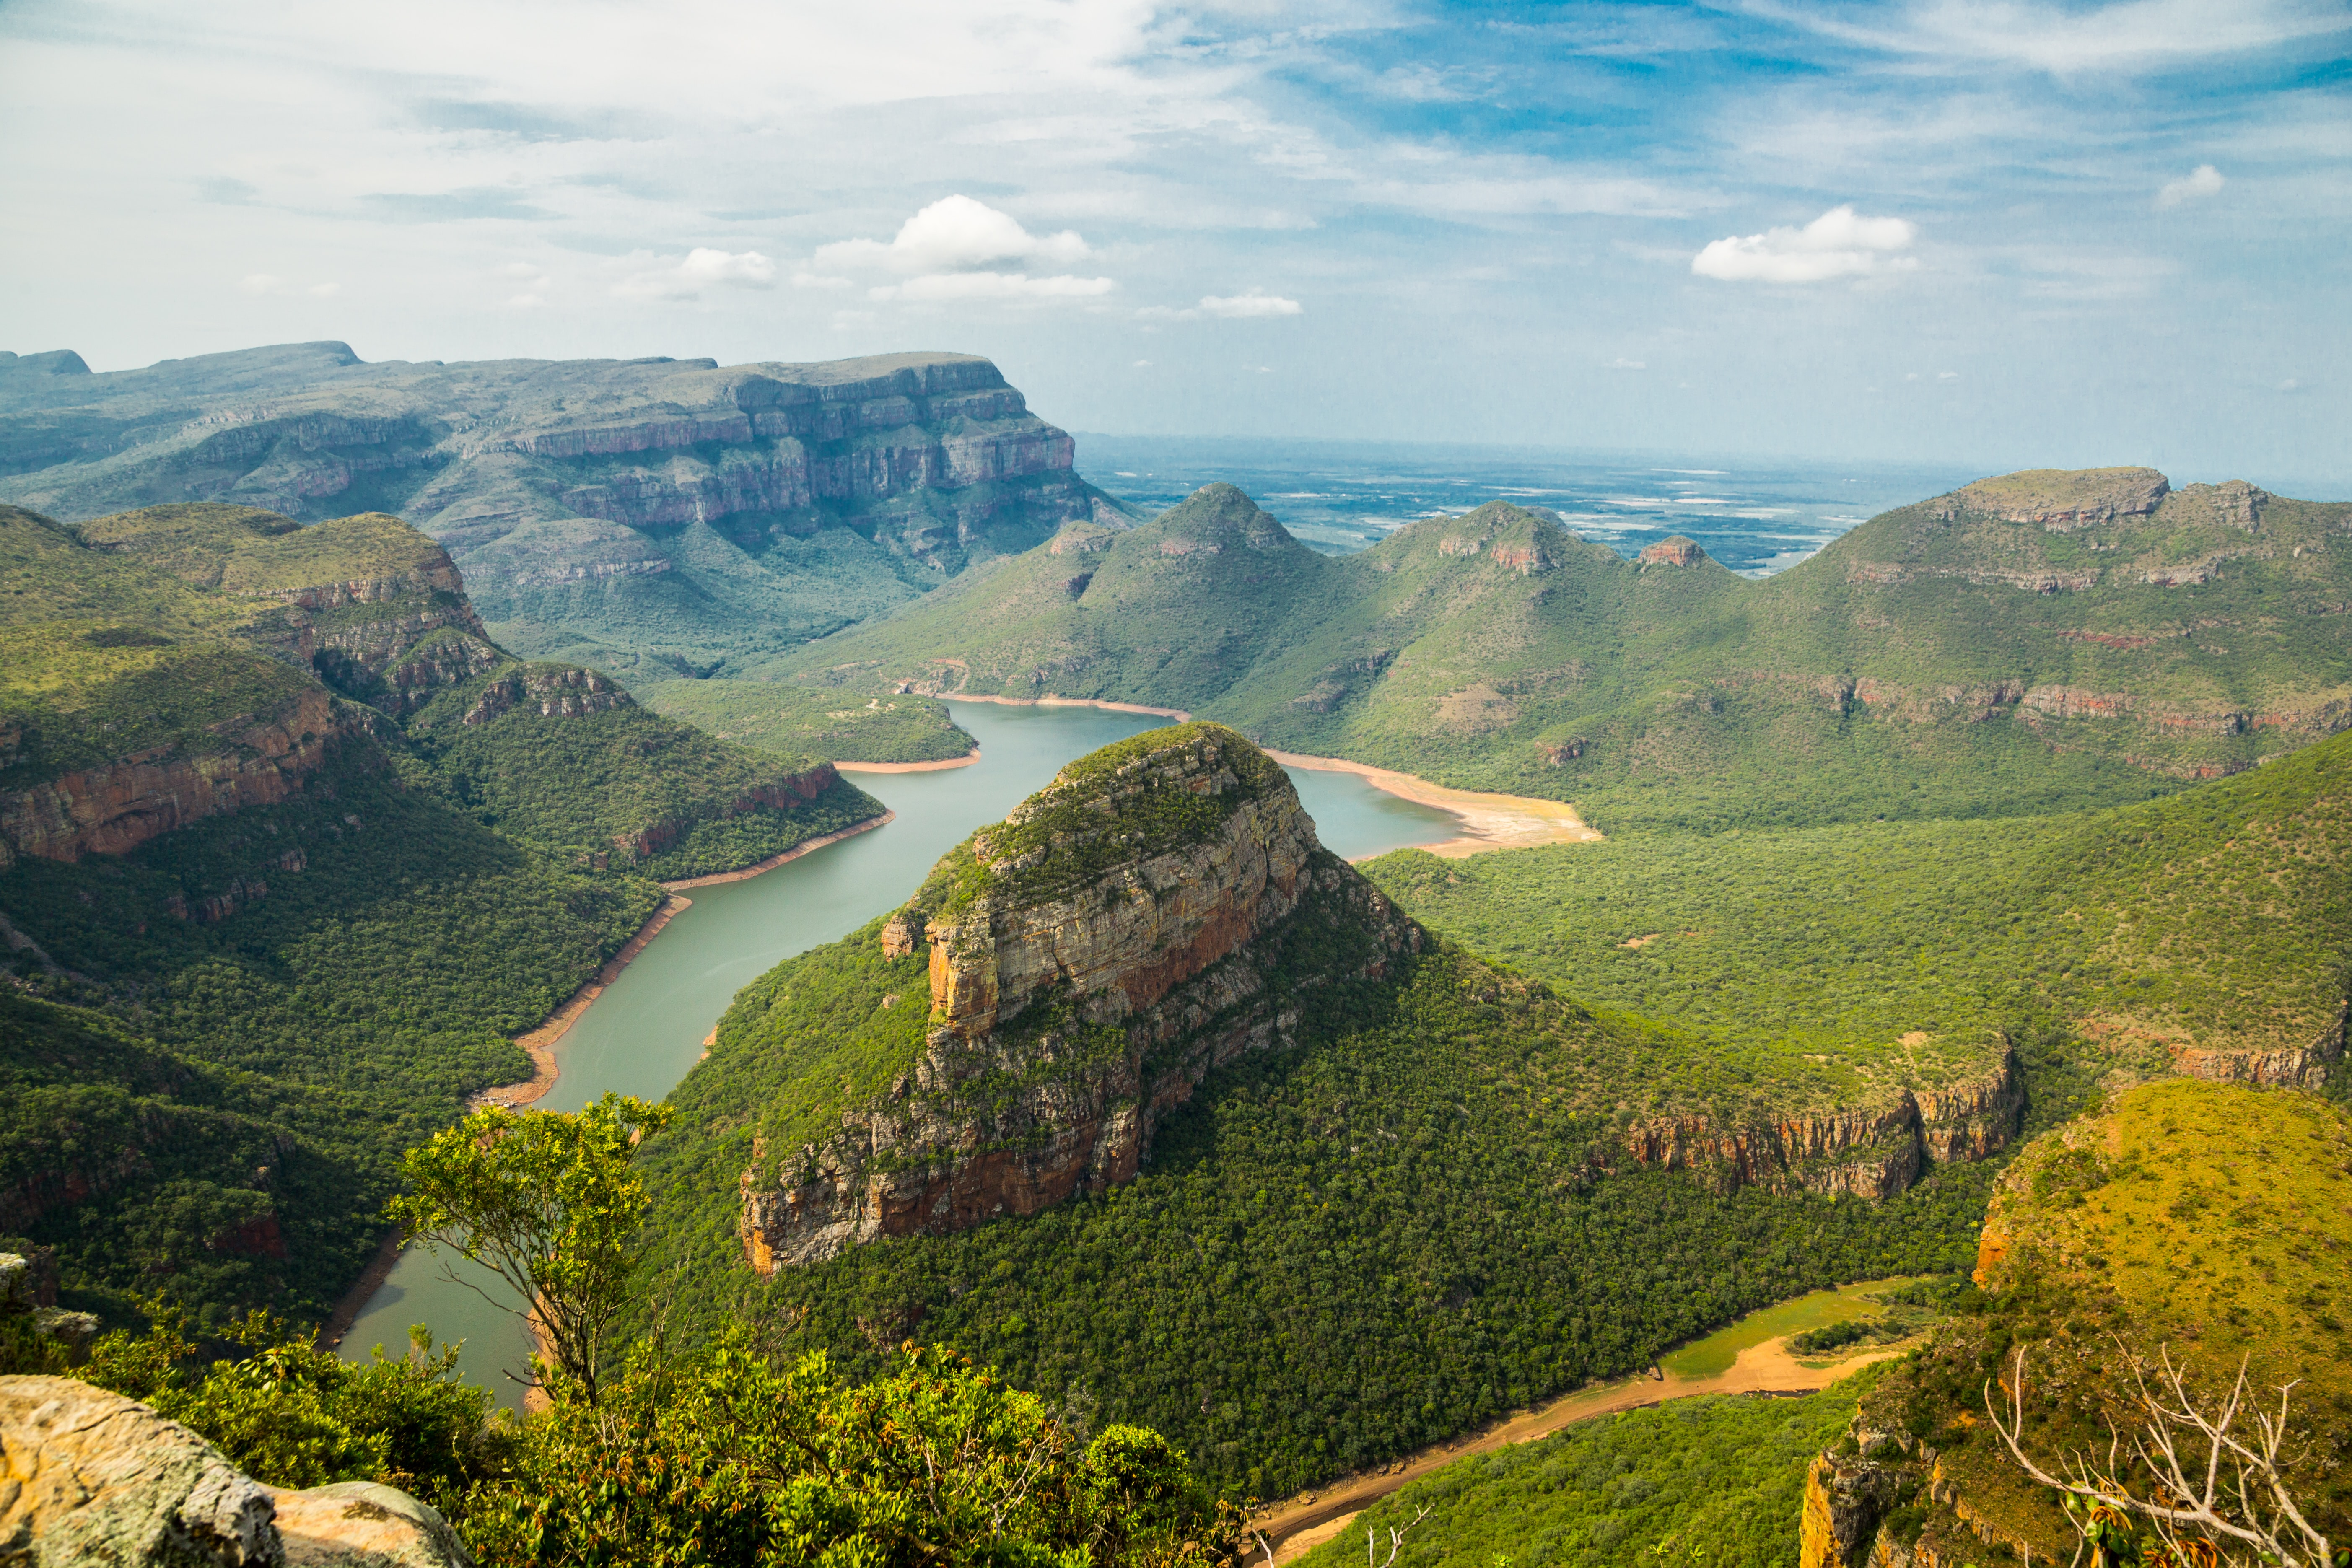 A high view of a lush mountain valley with a lake in South Africa